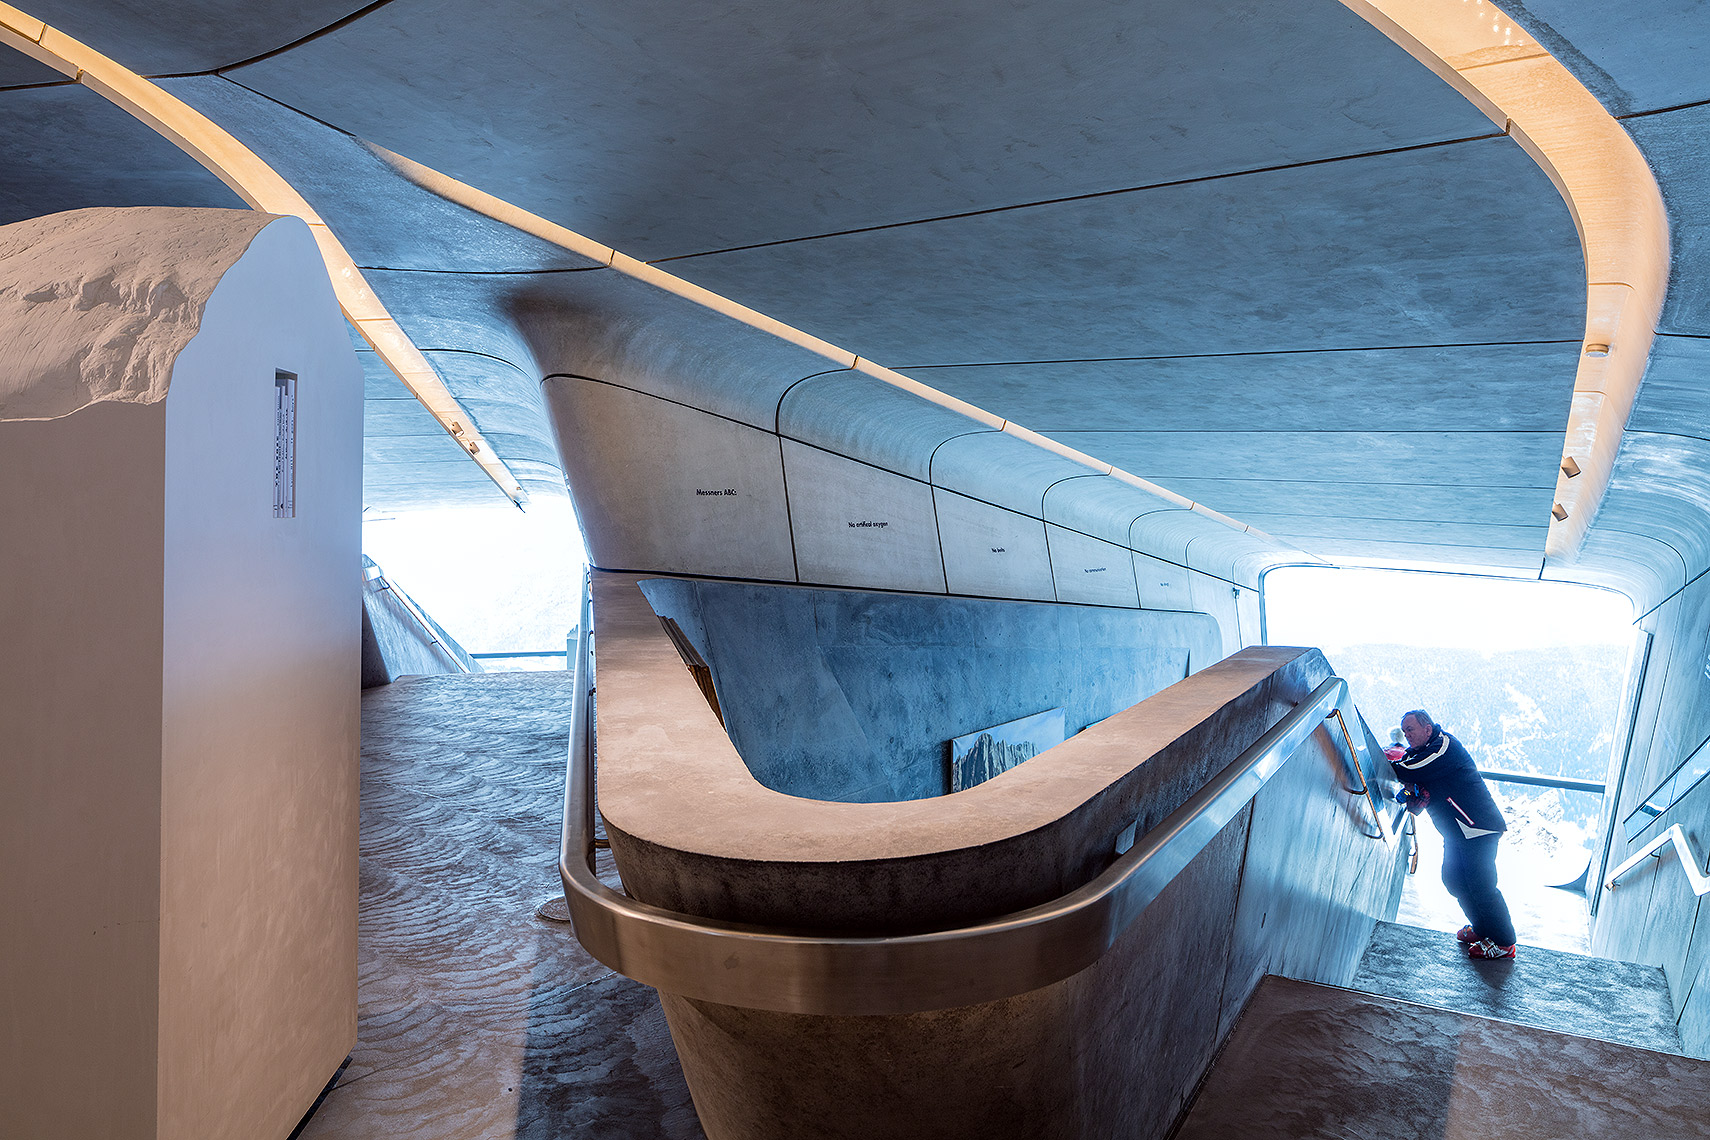 Messner Museum Corones interior, Peter A. Sellar Architectural Photographer